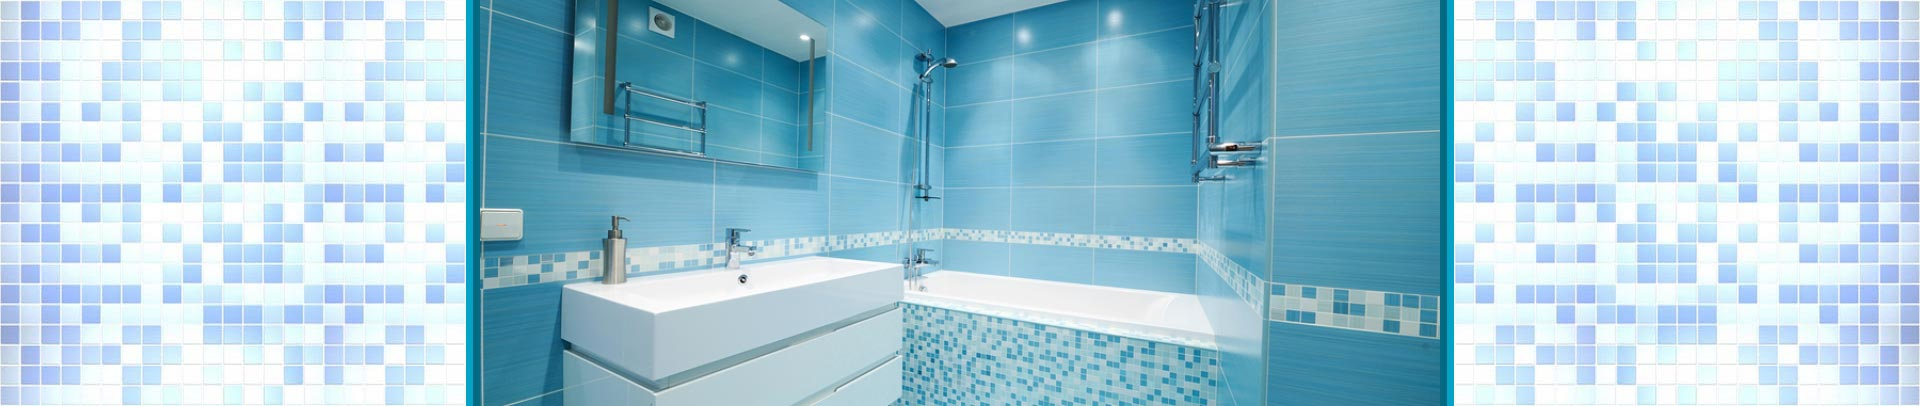 Essex bathroom fitting and installation Bathroom design and installation chester